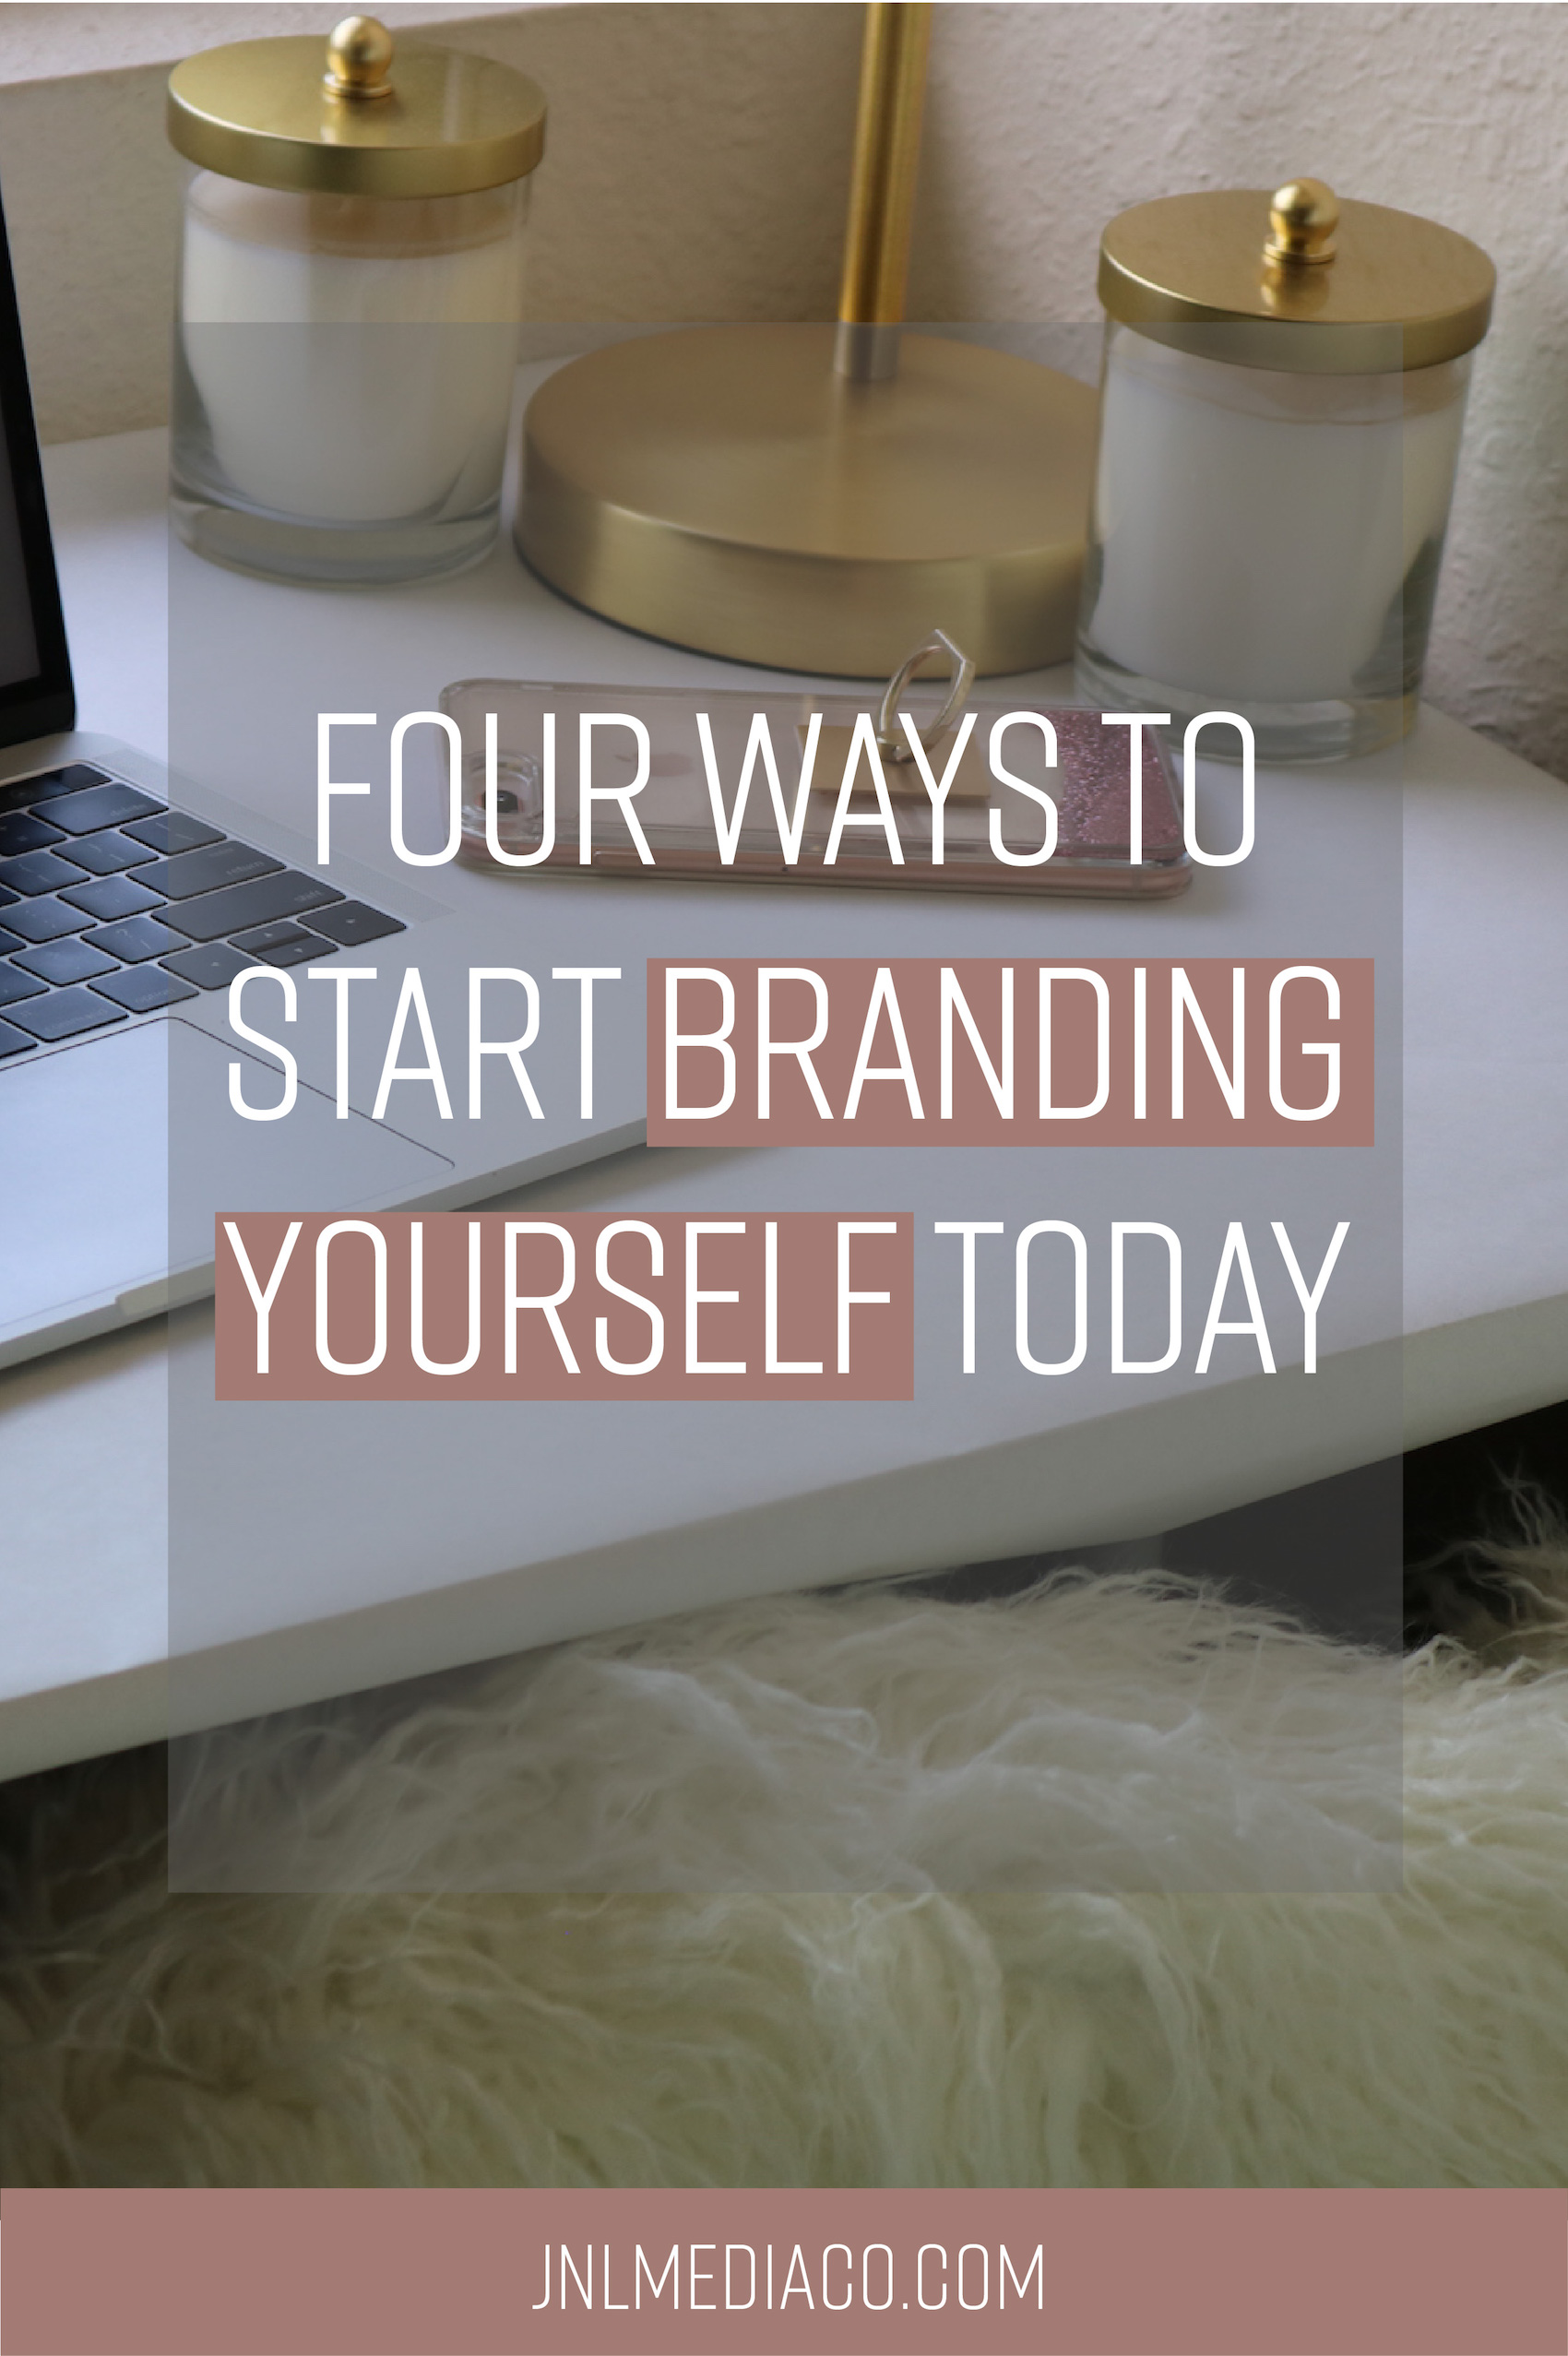 "The word branding comes up in every other sentence nowadays but how do you actually go about  ""branding yourself"".  Well, first of all, you have to understand what branding really is. I like to think of your brand as both intangible and tangible... Read the rest of the post to find out the four ways to start branding yourself today."